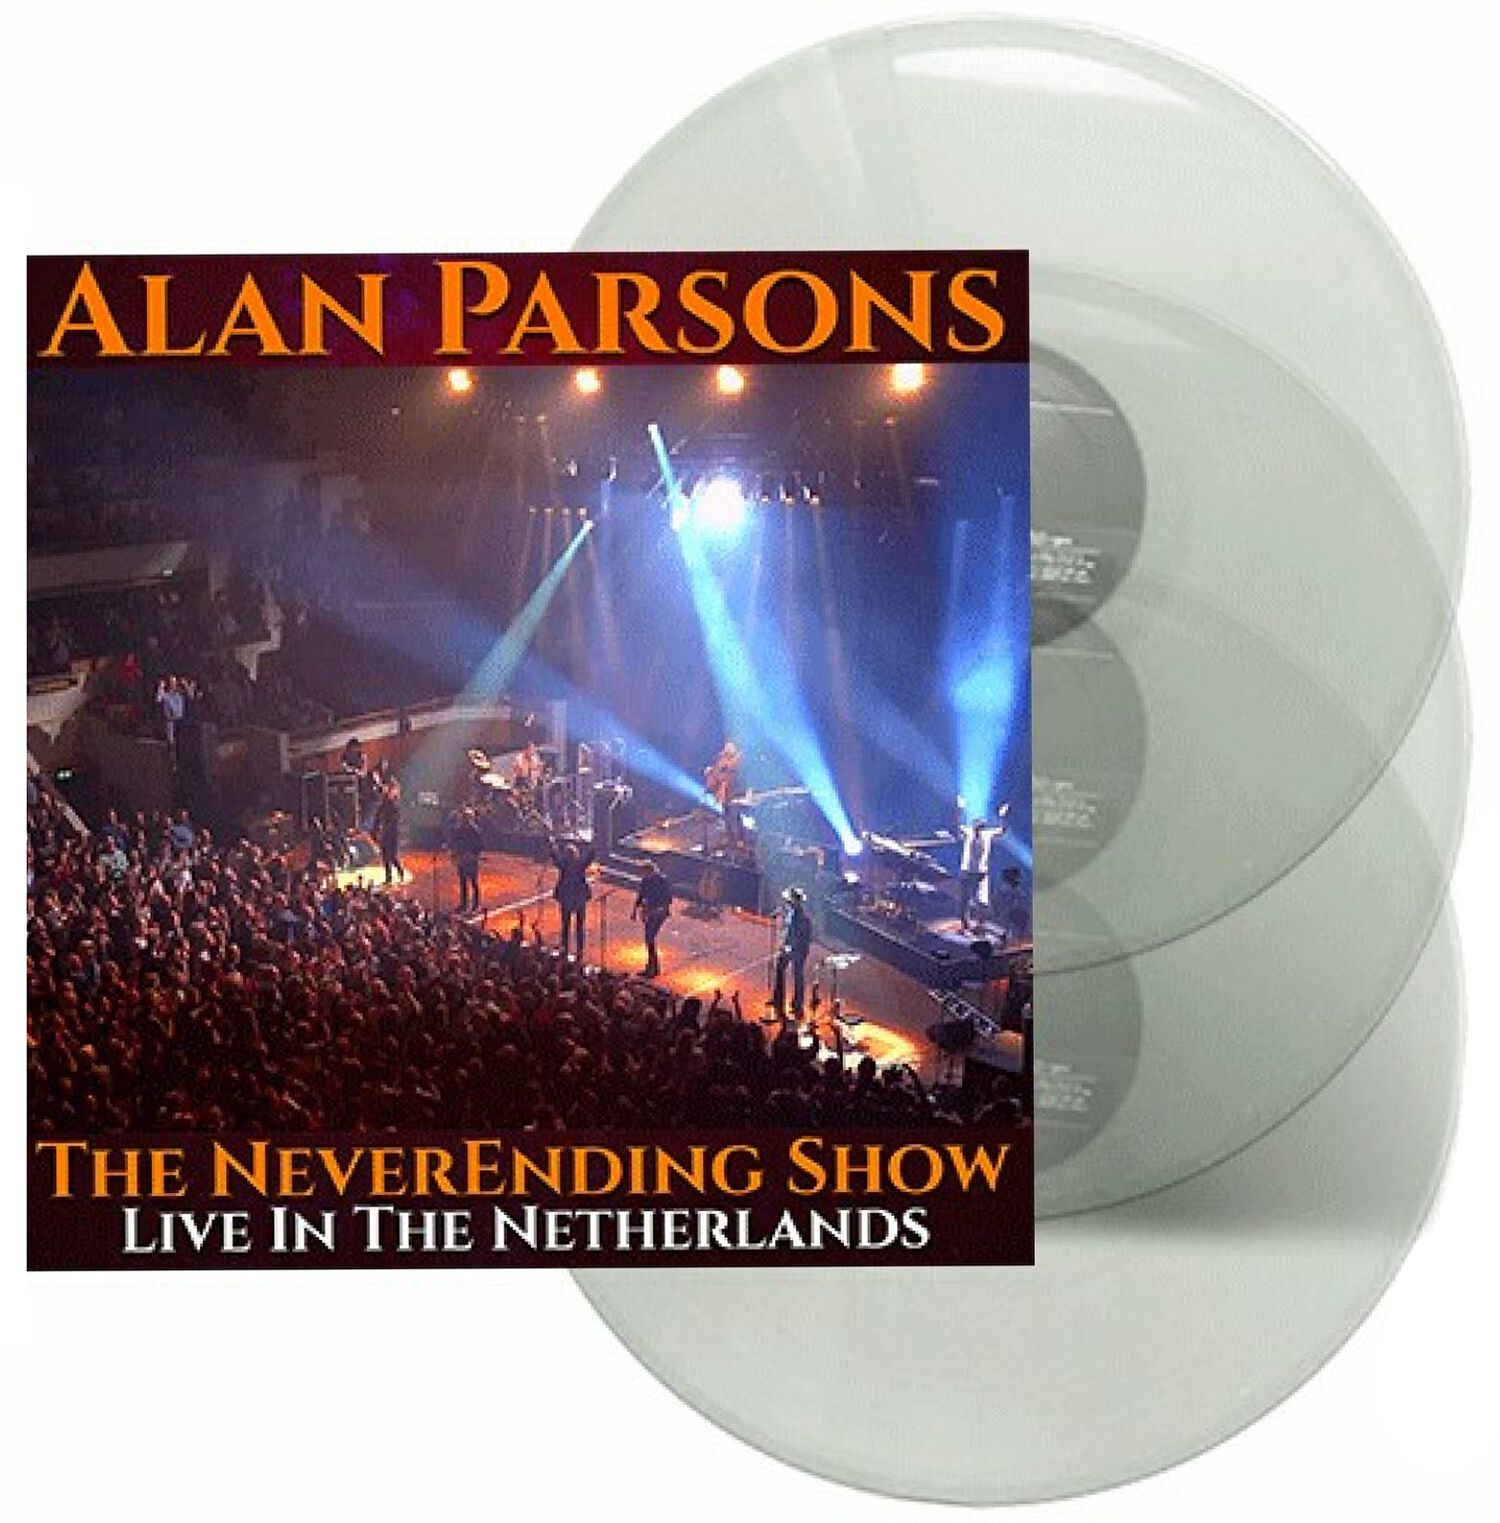 Image of Alan Parsons The neverending Show - Live in the Netherlands 3-LP farbig